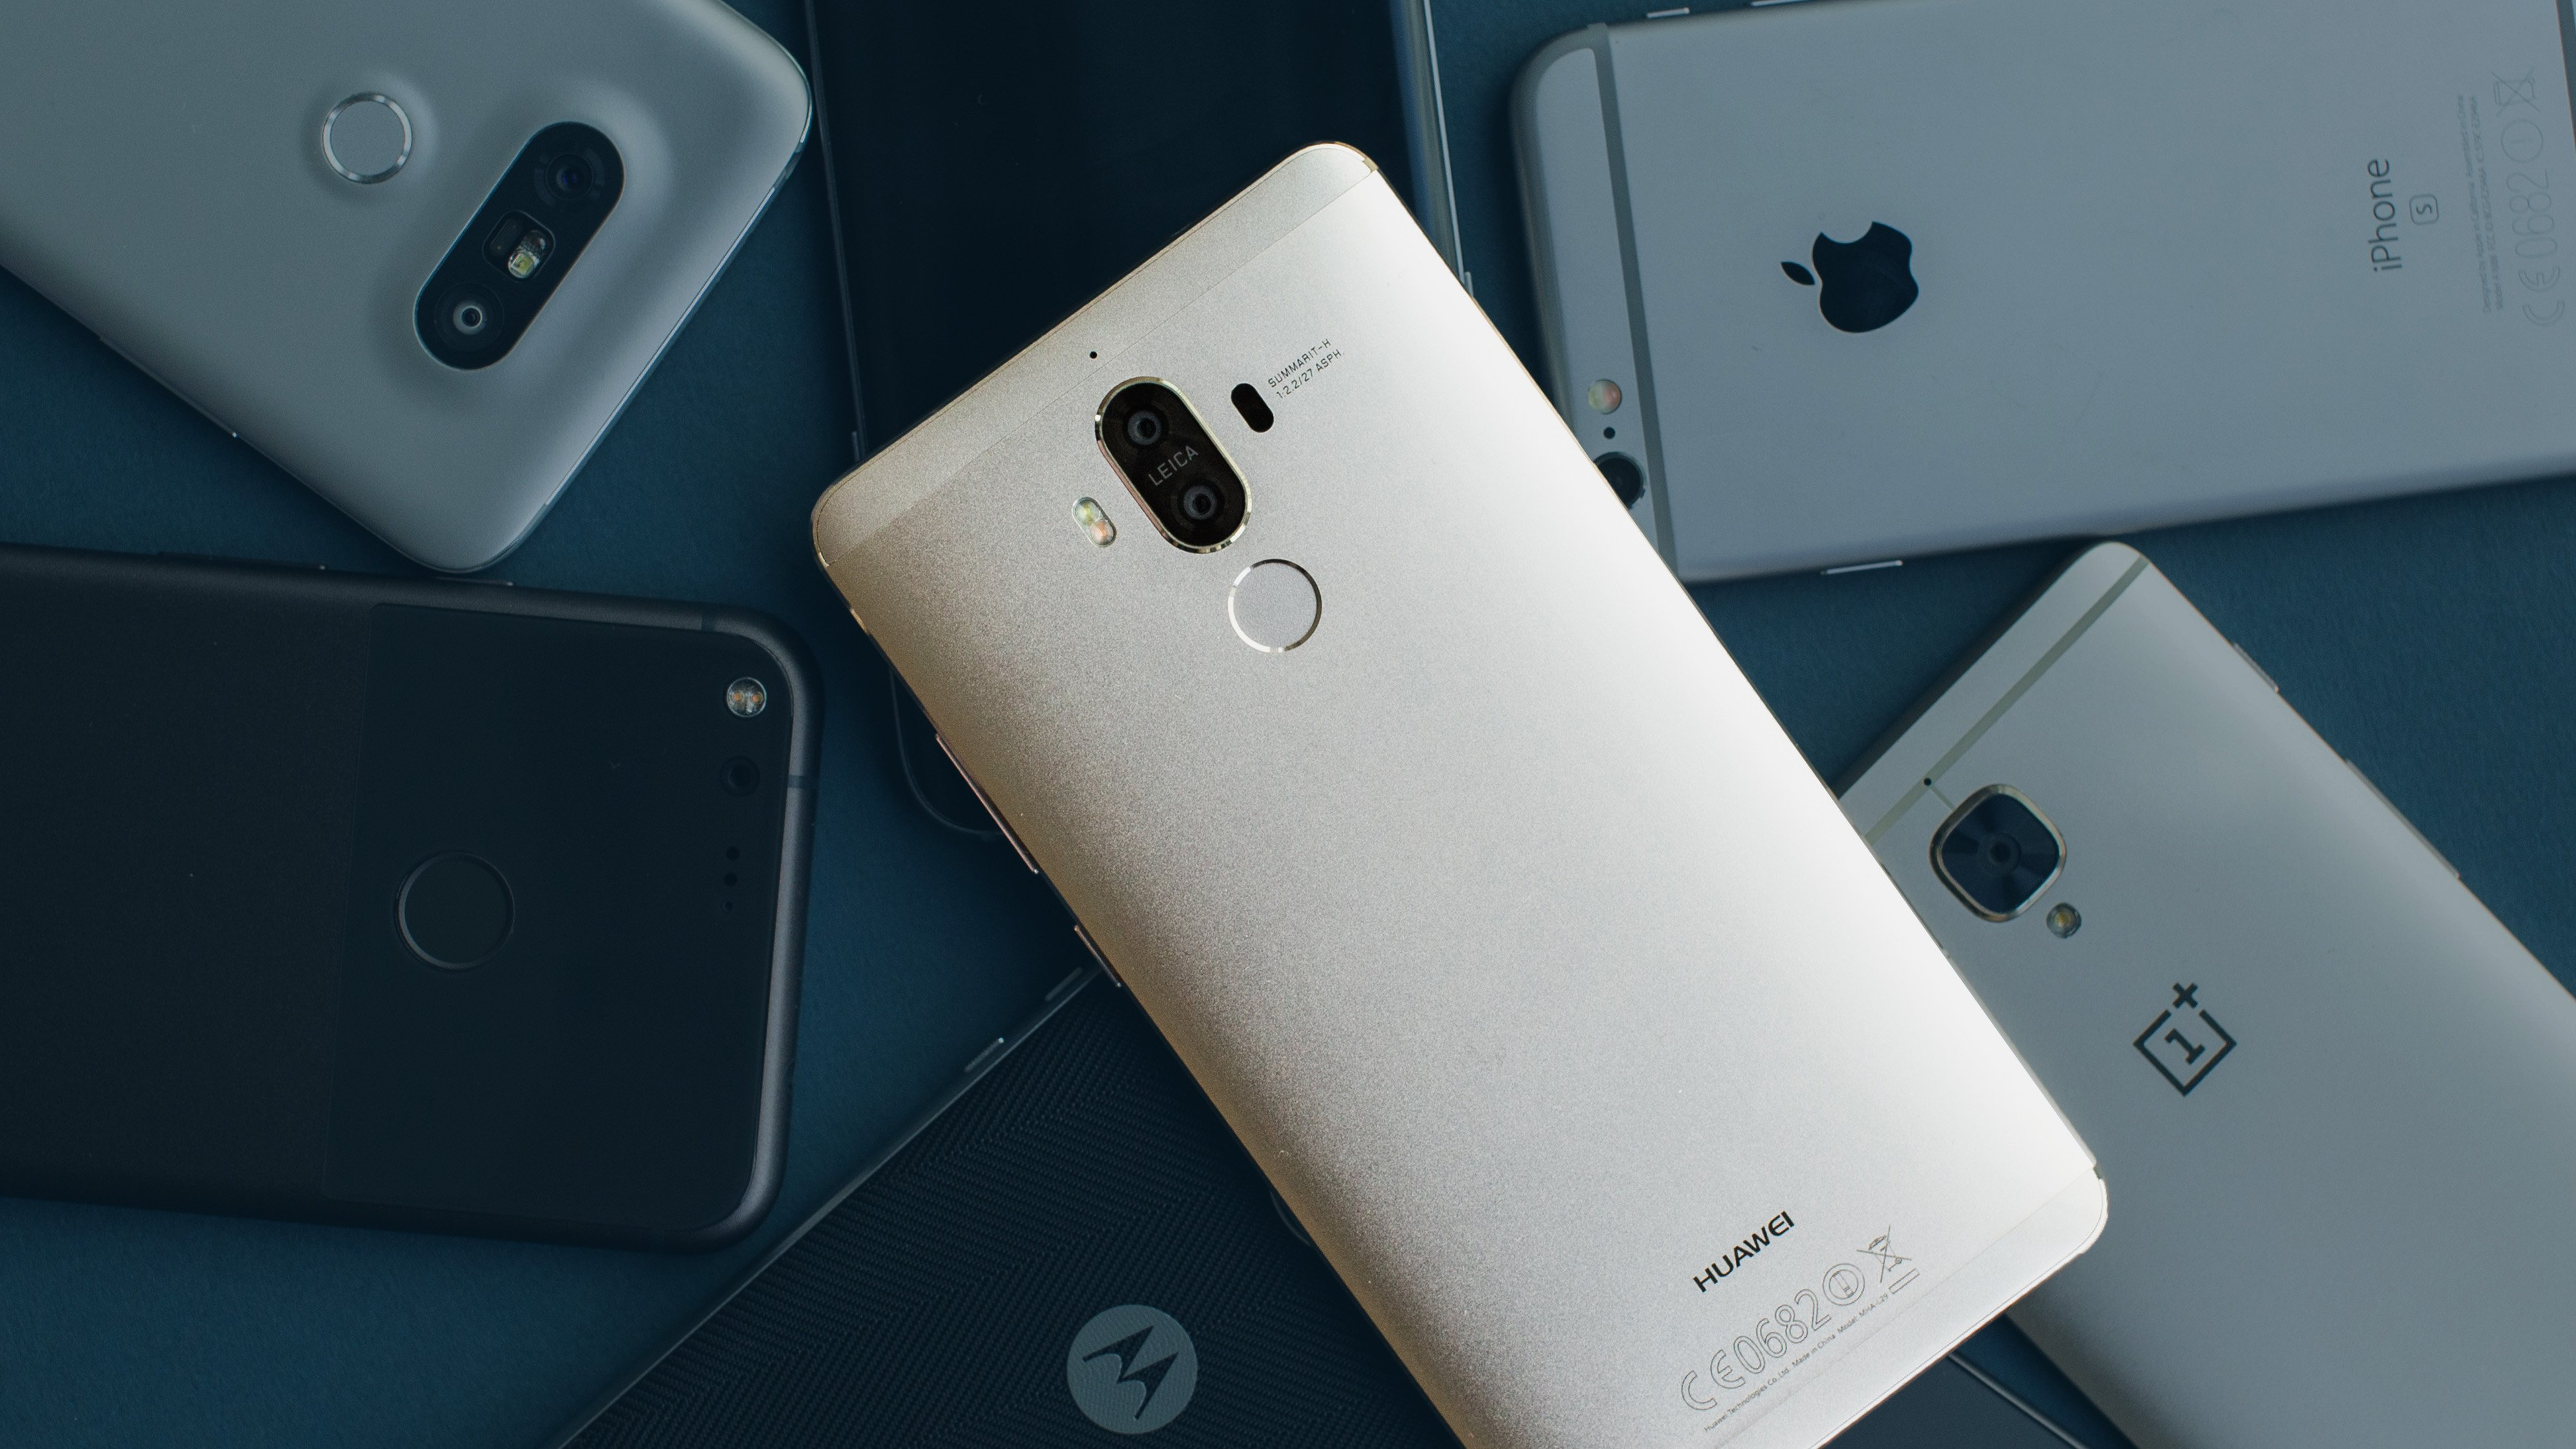 Huawei Mate 9 Android update: better battery life and gaming experience